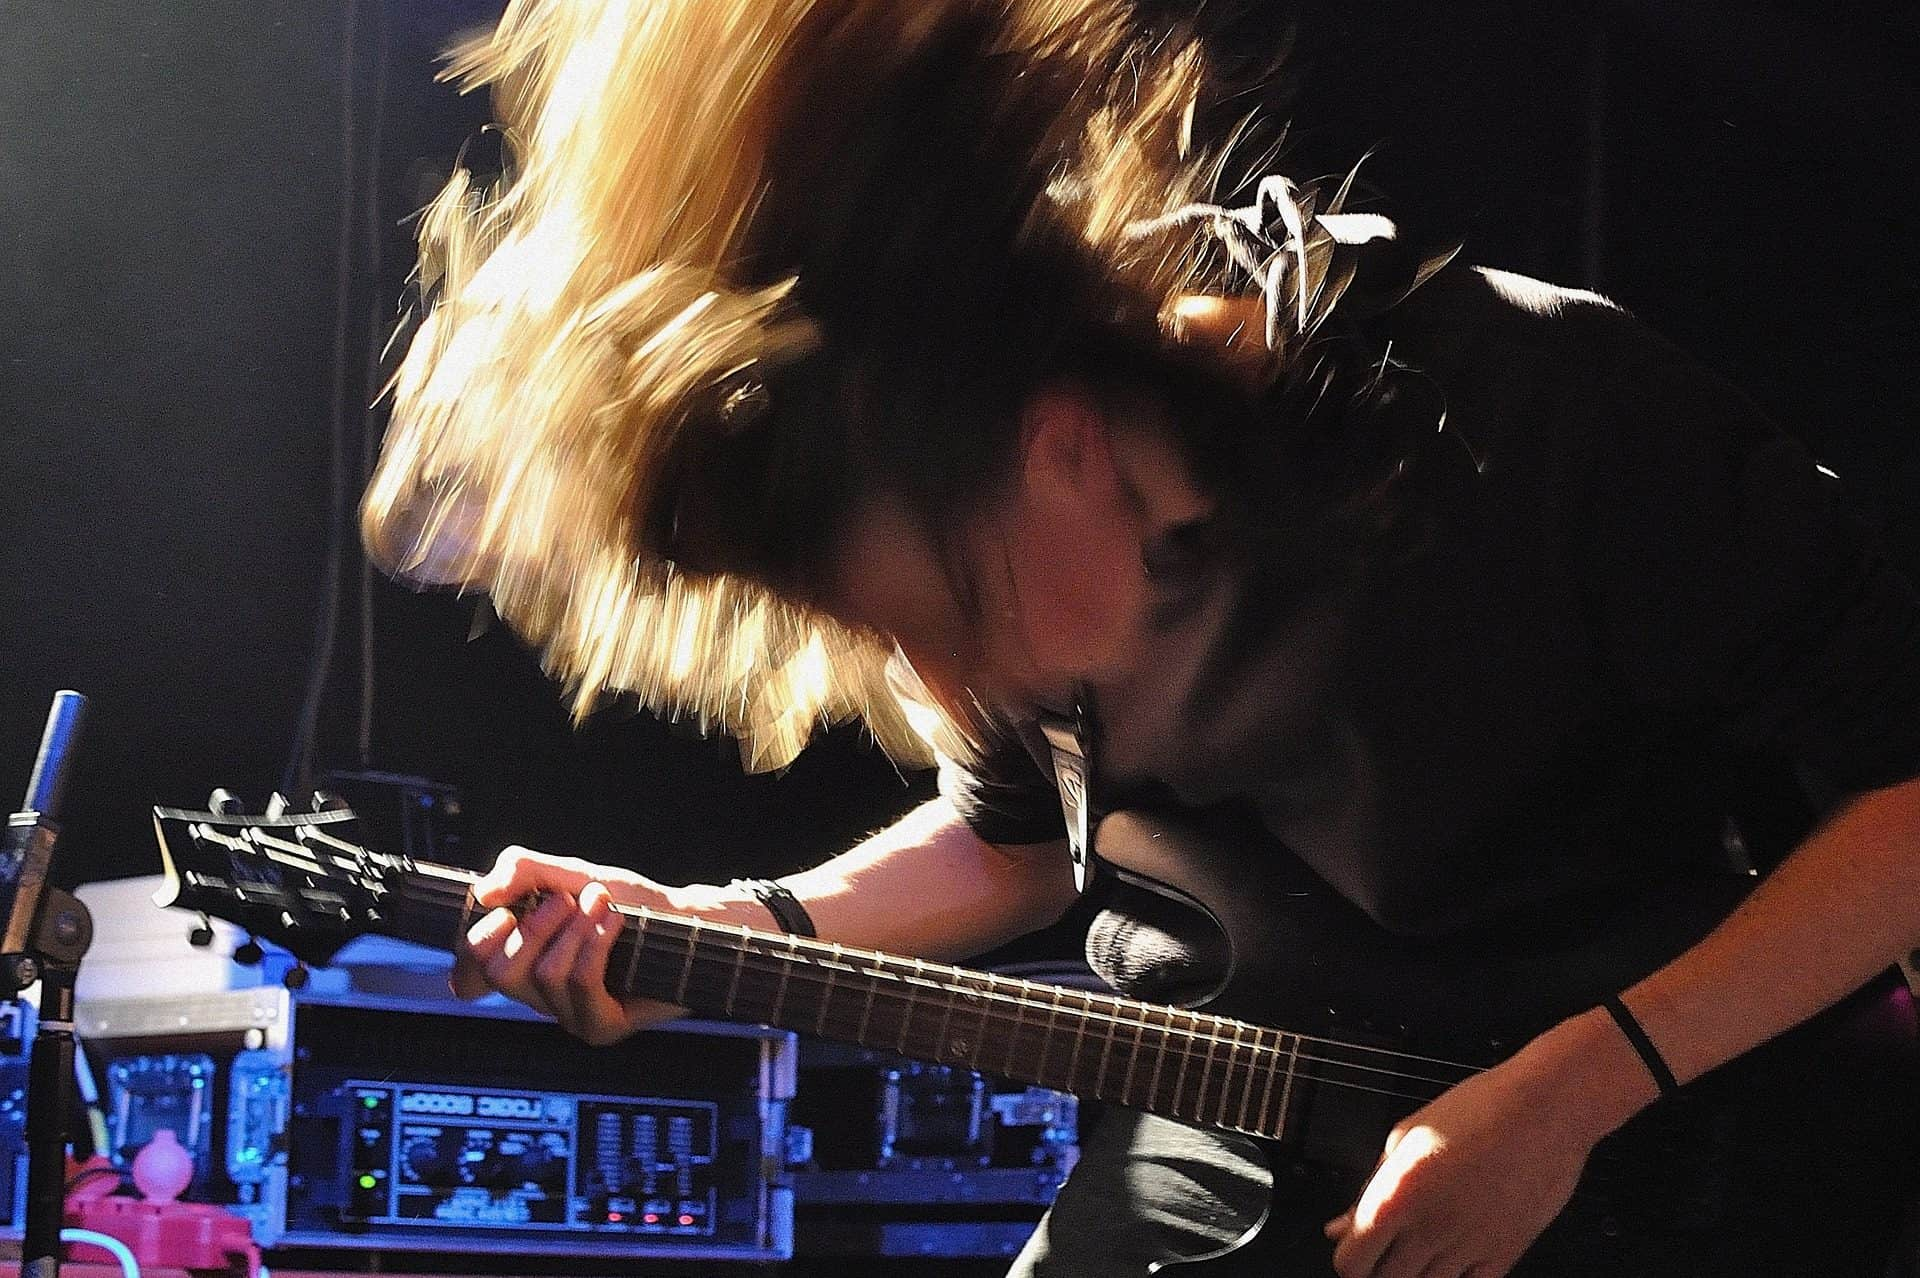 A rock guitarist in a heavy action shot